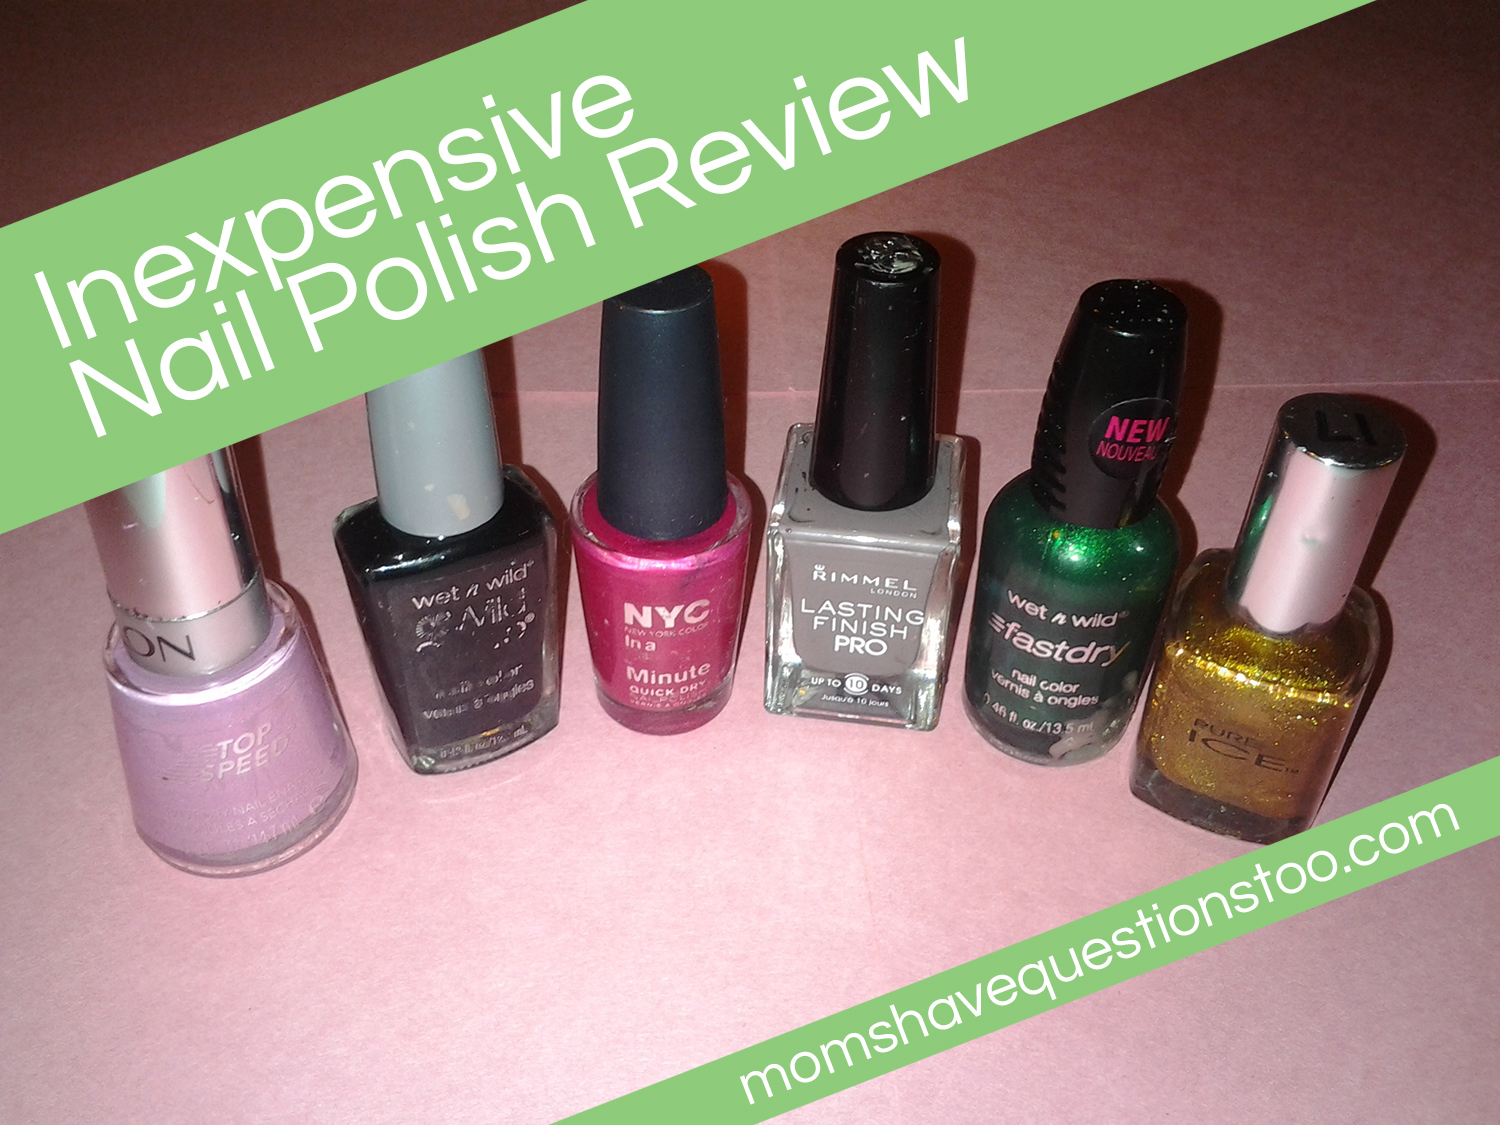 Nail Polish Review - Moms Have Questions Too